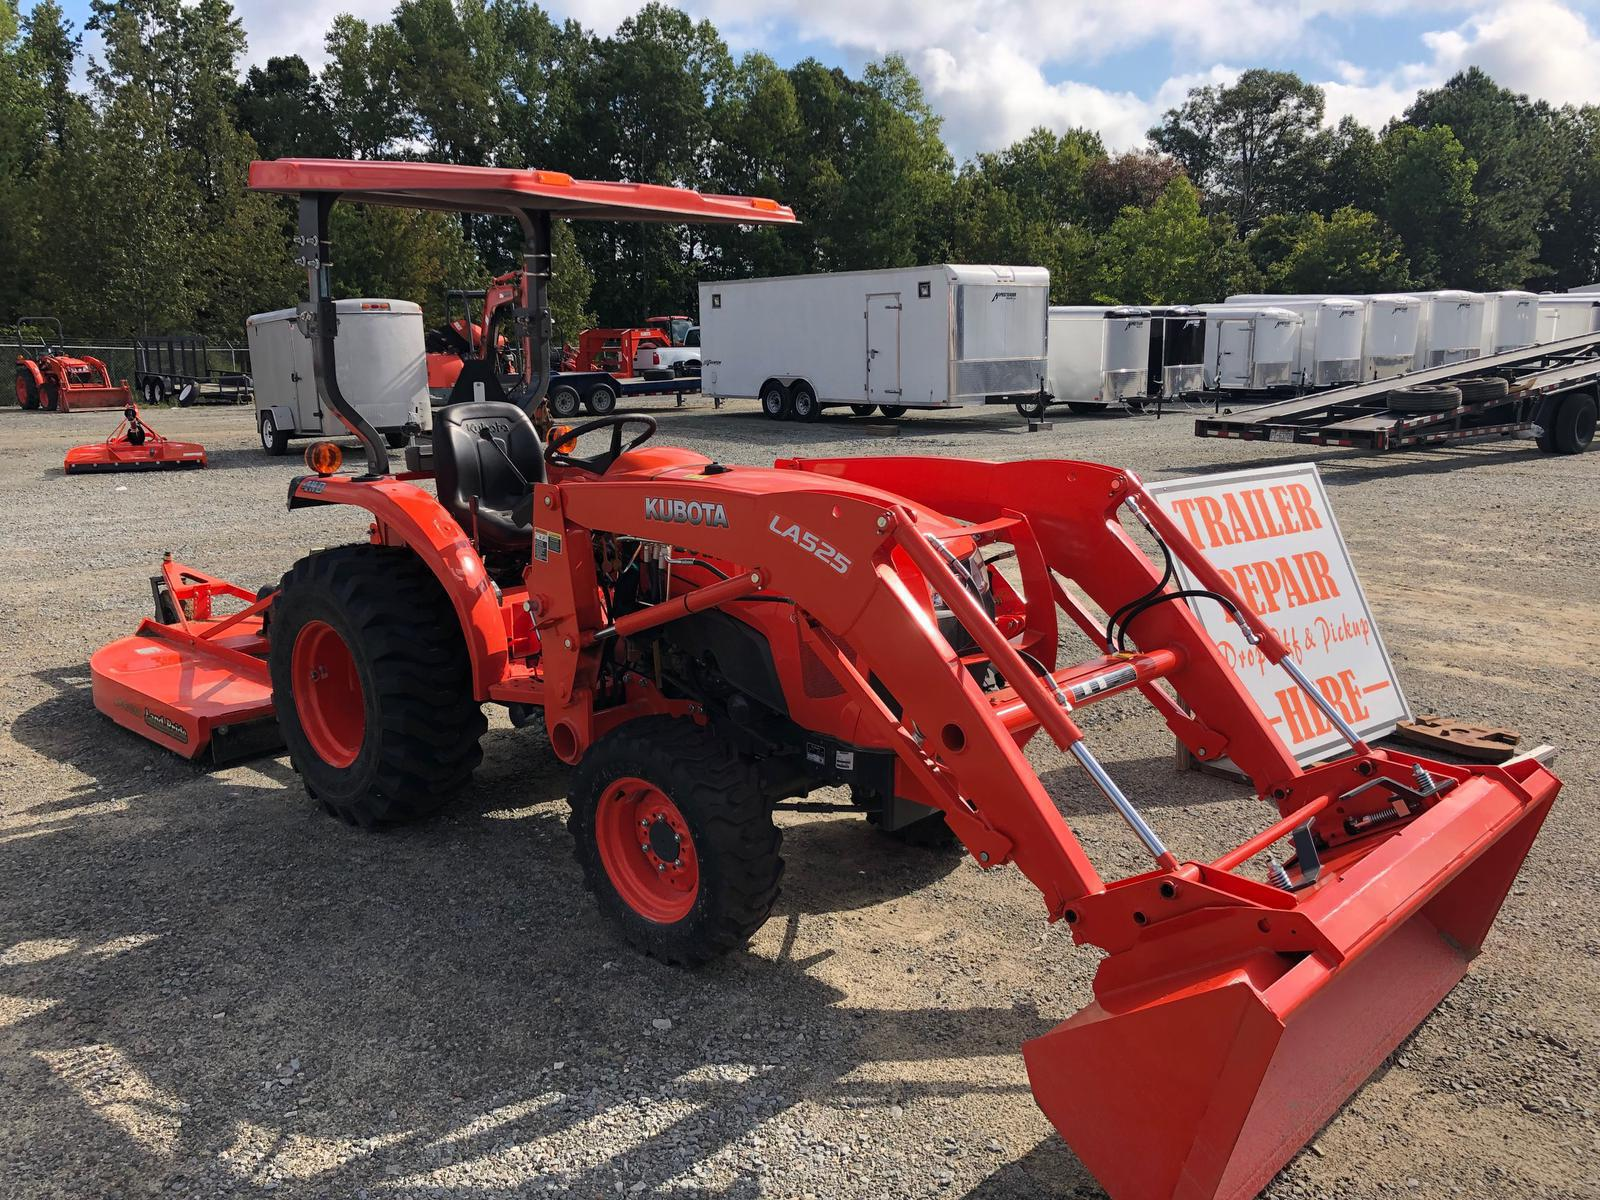 Agricultural Tractors and Construction Loaders from Kubota